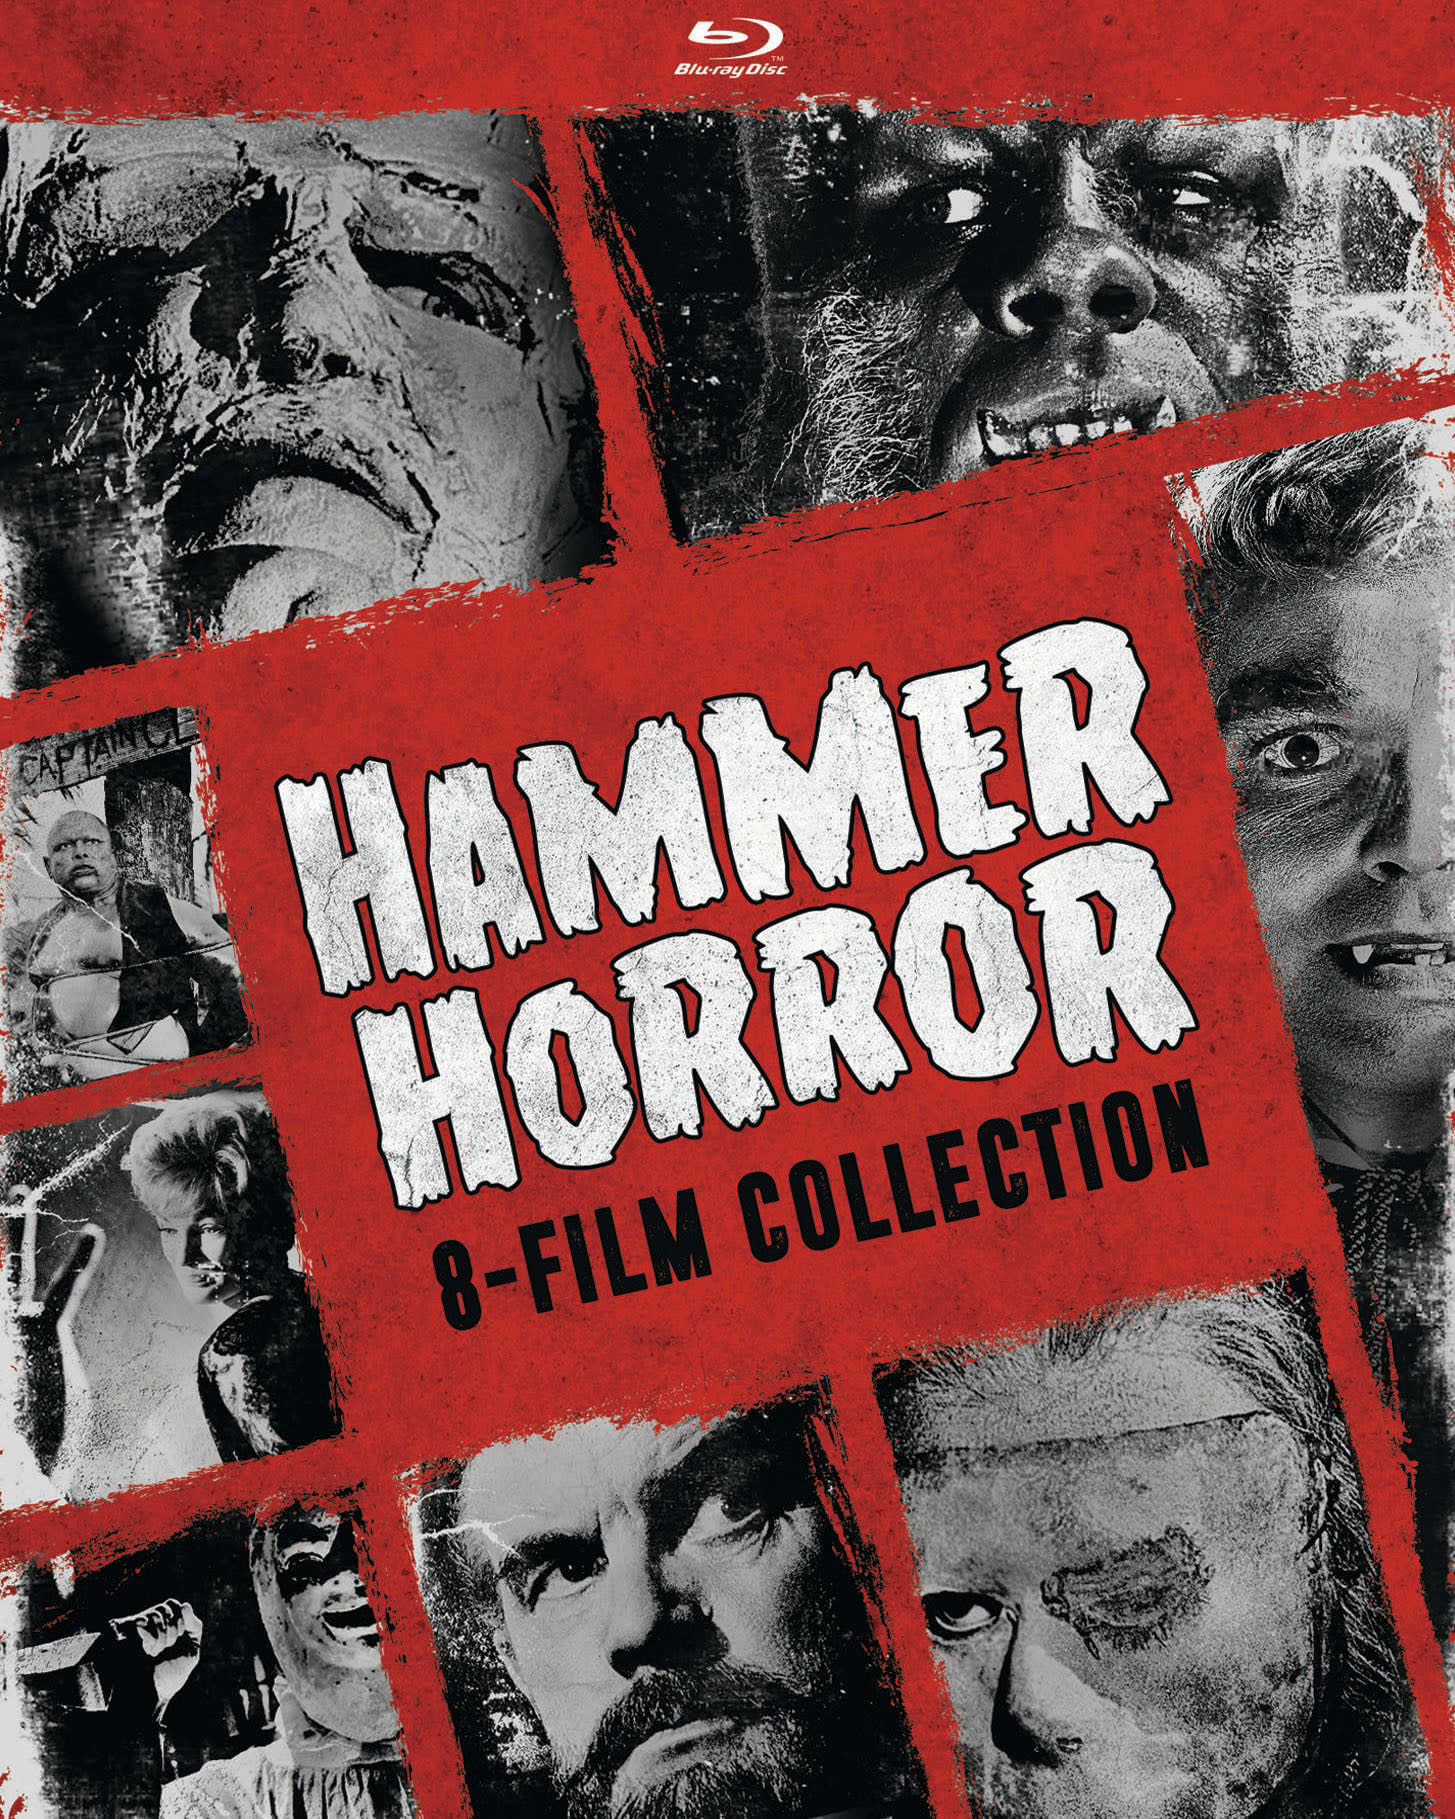 Hammer Horror 8-Film Collection (Box Set) [Blu-ray]